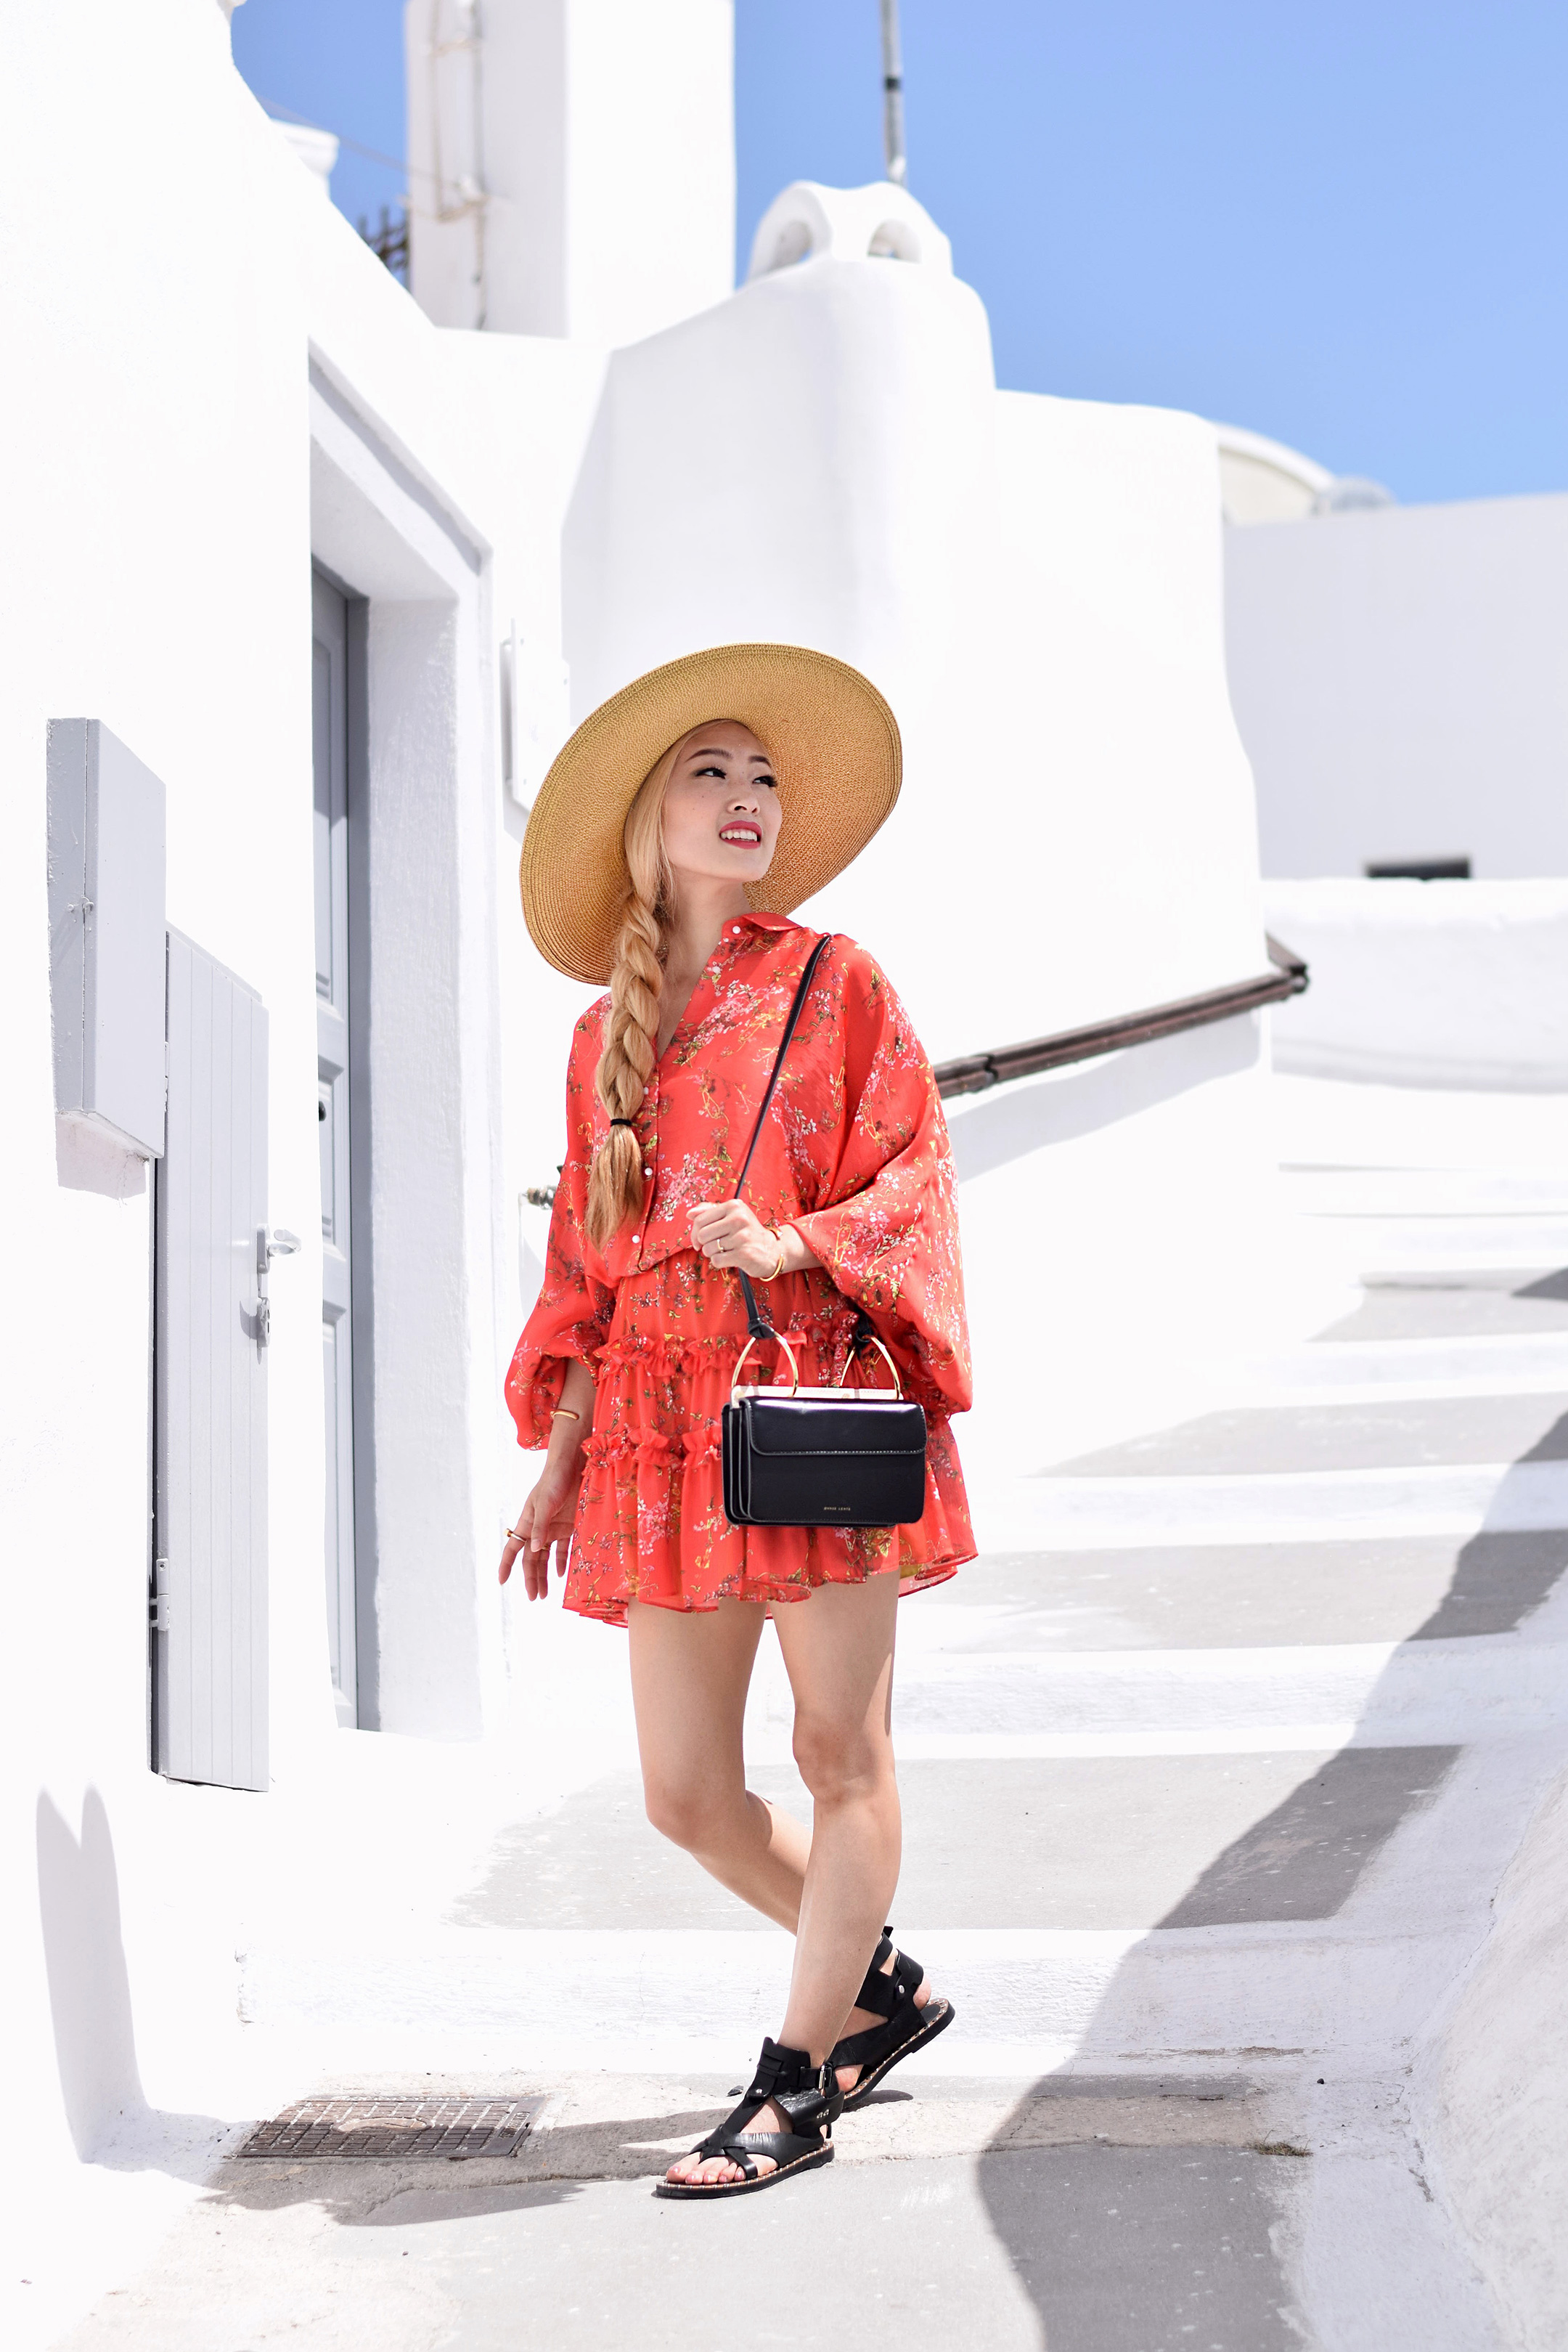 Floral dresses aren't only for spring, they're perfect for summer as well. My Santorini Lookbook 2 brings flower power to the forefront with this amazing floral dress by Alexis. This is the season where flowers are in full bloom, and I felt like this bold red dress went perfectly with all the flowers in Santorini. | #ontheblog | #SantoriniFashion | #travelSantorini | #Greece | #summerfashion | #traveloutfit | Isabel Marant | Nine West | #floraldress | #summerdress |